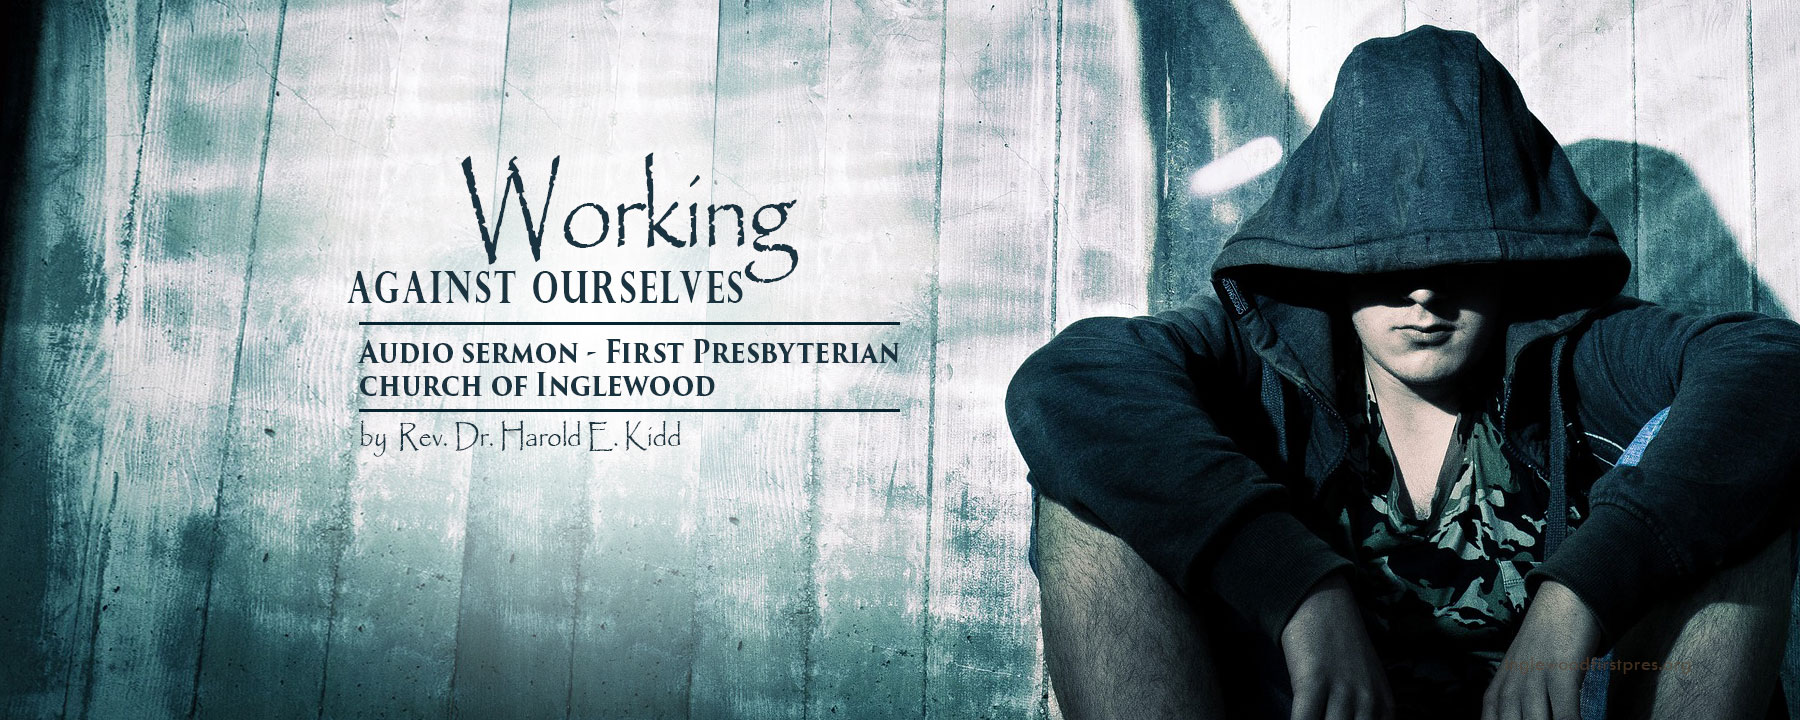 Sermon: Working Against Ourselves by Rev. Dr. Harold E. Kidd